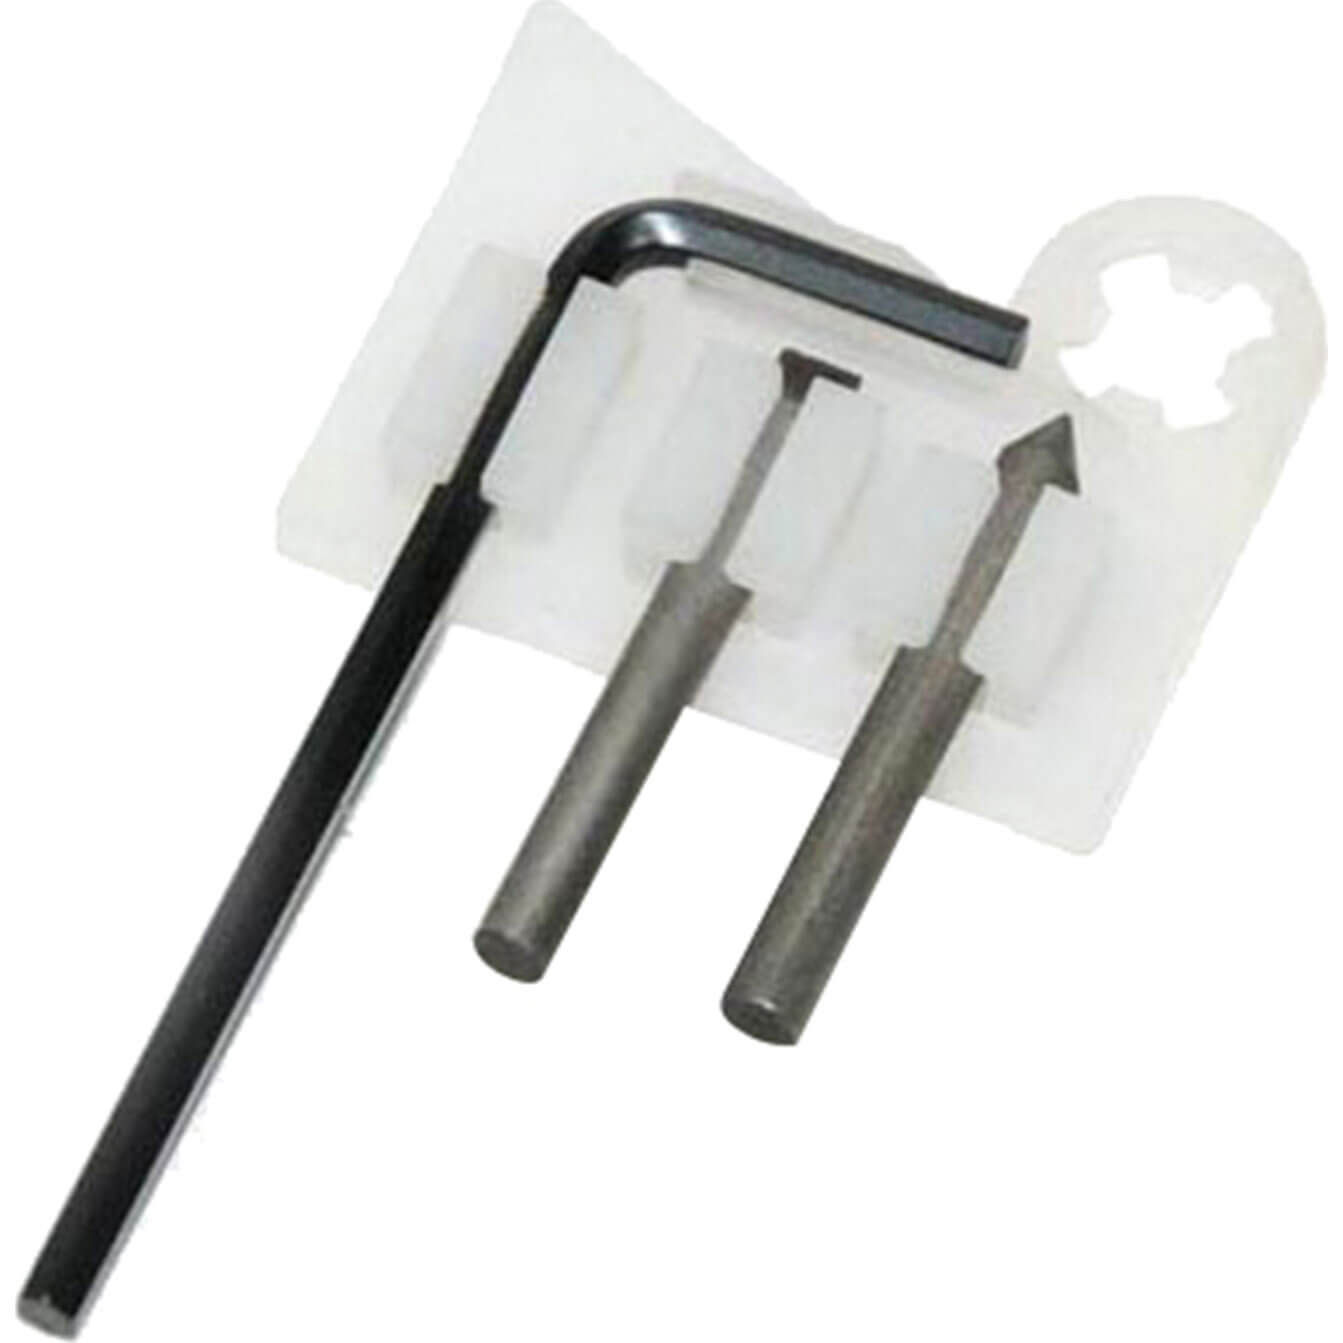 Image of Vitrex 3 Piece Tip Set for Tile Grout Out Tool